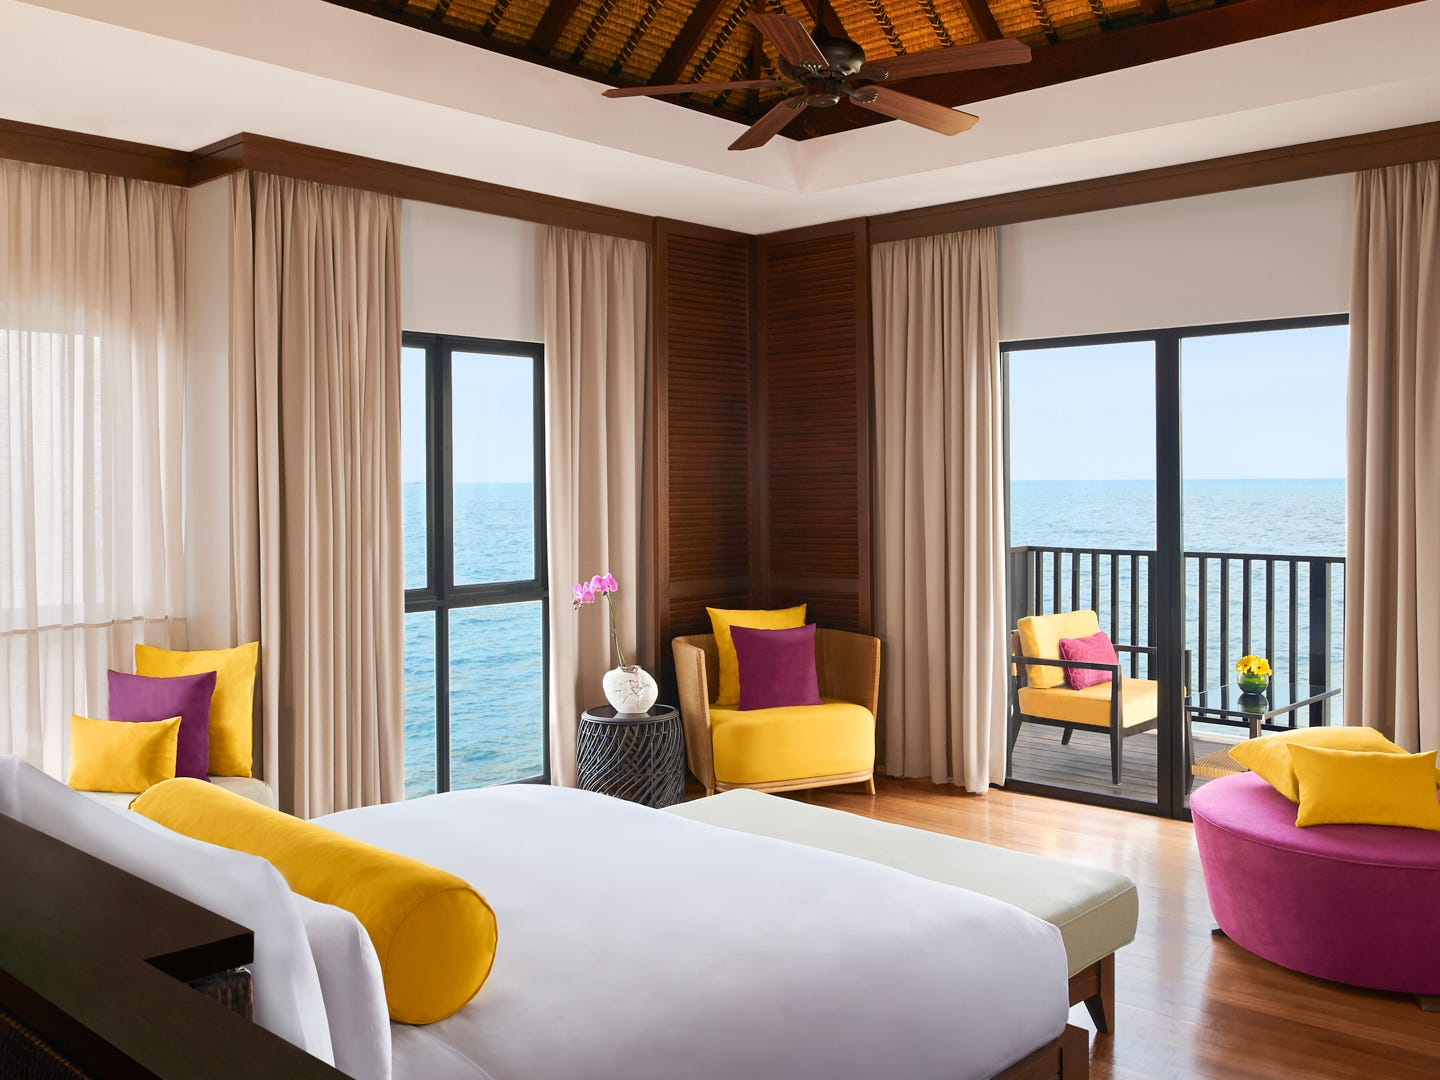 AVANI Sepang Goldcoast Resort, from $160 per night. A two-bedroom over-water villa for less than $200 a night? Yes, it's possible in Malaysia. Recipient of a TripAdvisor certificate of excellence, the AVANI Sepang Goldcoast Resort is the place to stretch out and drift off, surrounded by the lull of the ocean waves. The hotel room is extra large and fits four, so there's plenty of space to relax on your private terrace and take in the views. Nearby attractions include river cruises, eco-villages and even an elephant sanctuary.